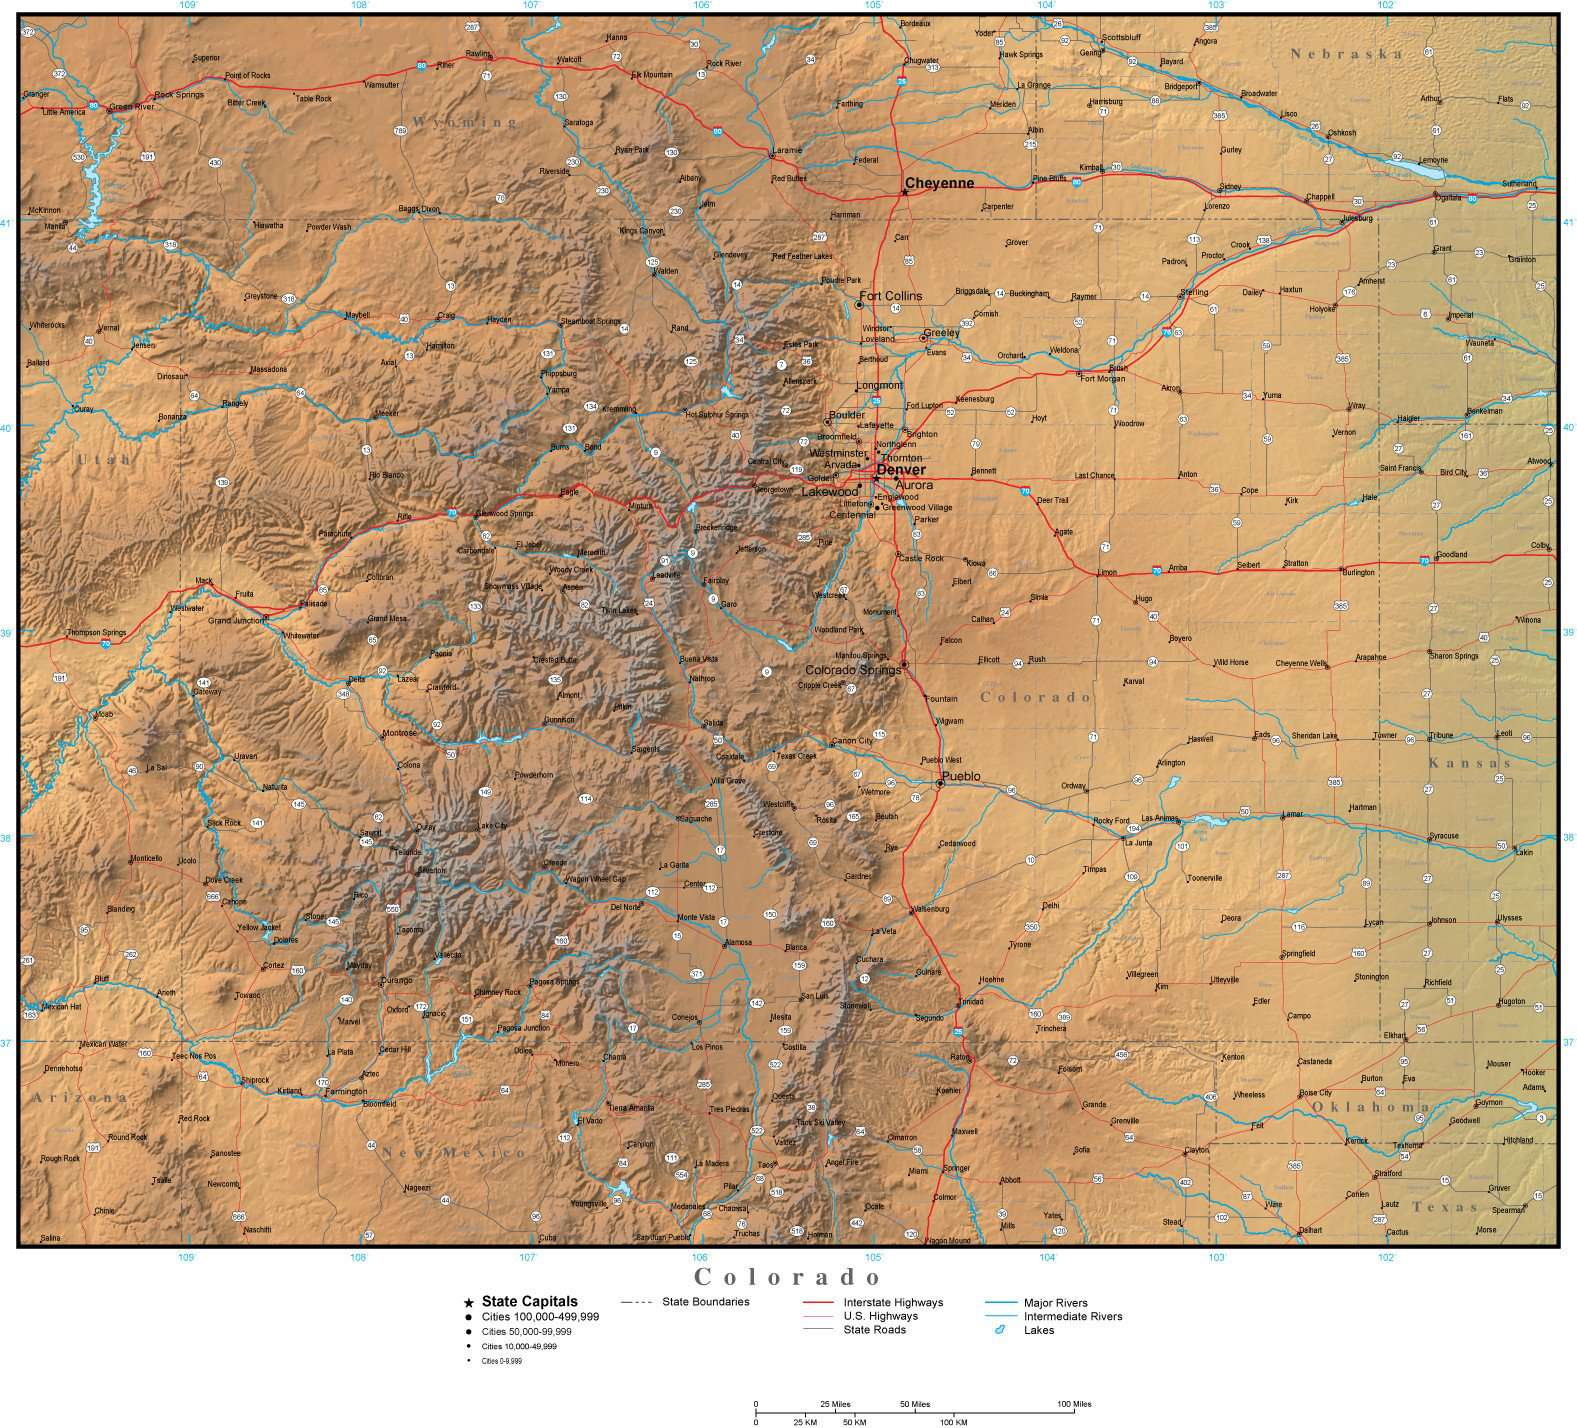 Colorado Map Plus Terrain with Cities Roads and Water Features on cities in ct, cities idaho map, cities in eastern ohio, cities alaska map, cities in western kentucky, cities in georgia area, cities and towns in colorado, cities in galveston county, cities in southern colorado, cities in southeast colorado, cities in mt, cities in la county, cities oregon map, cities arkansas map, cities in neb, cities in riverside county, cities wyoming map, cities in southern maine, cities in northwest indiana, cities south america map,